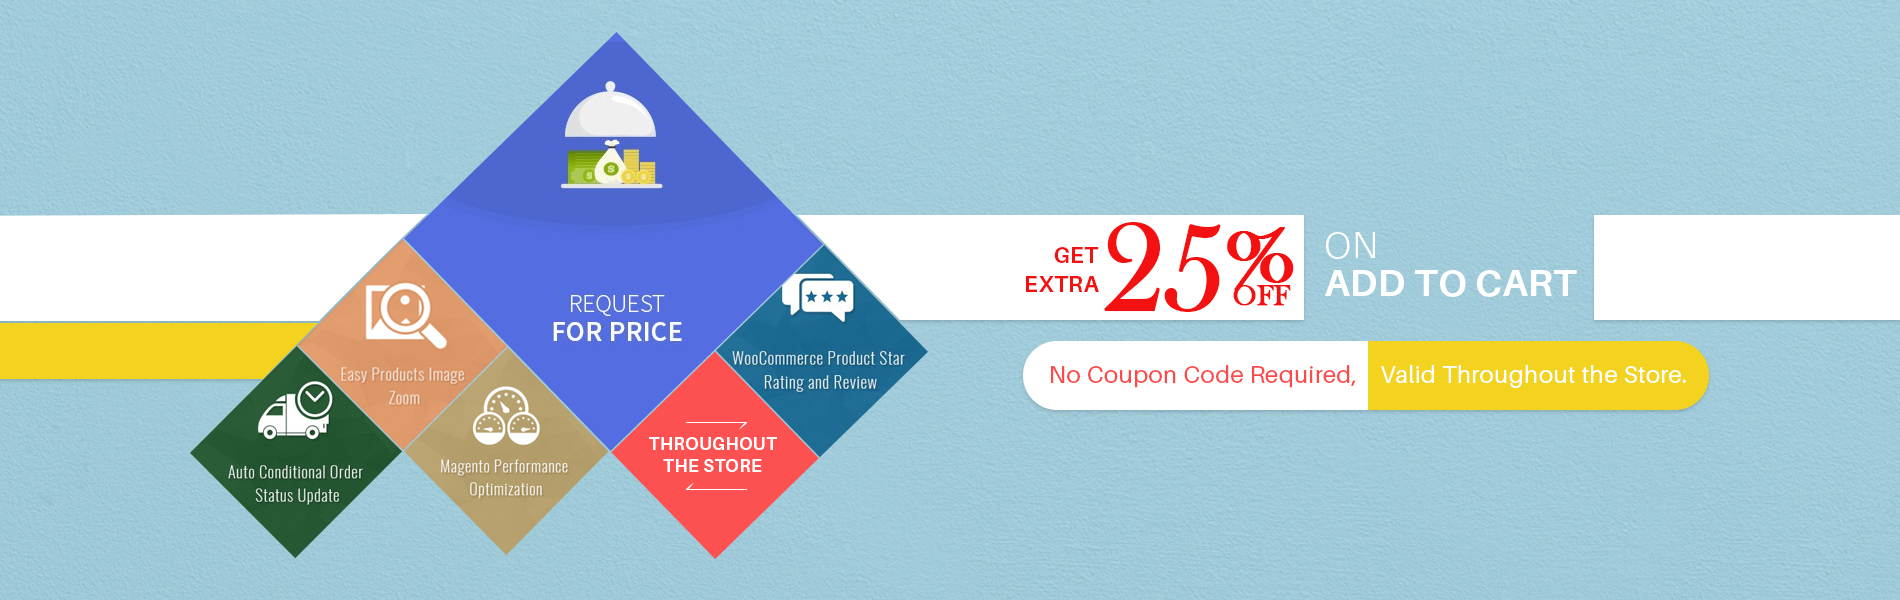 Name:  get-extra-25%-off.jpg Views: 3 Size:  570.2 KB